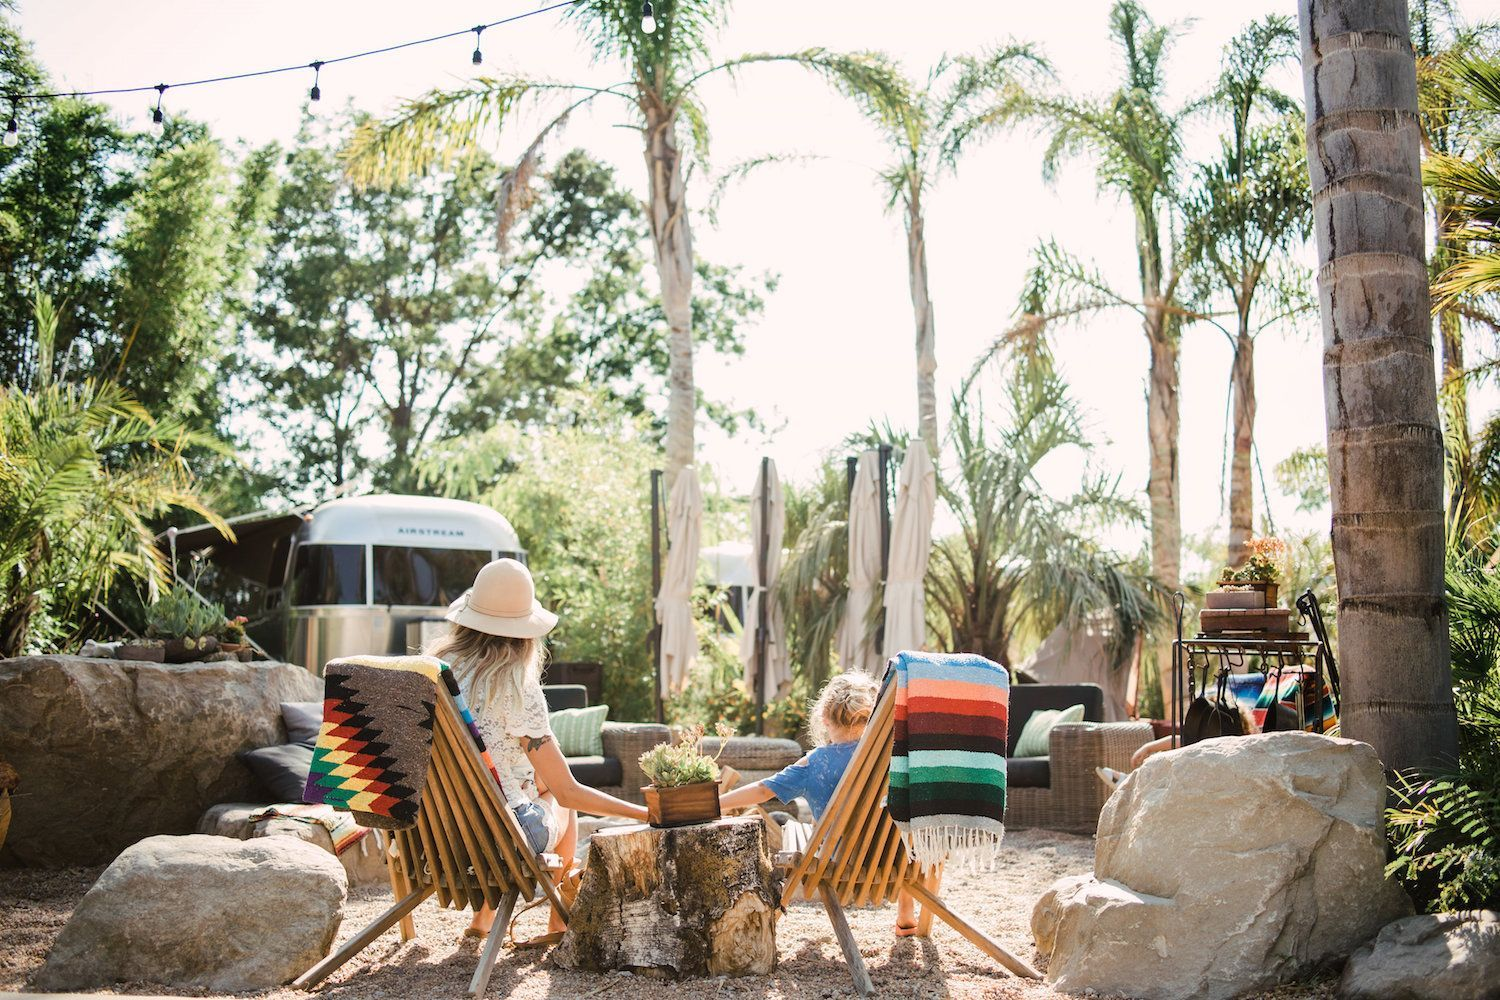 A Unique #Airstream #Hotel Offers an Exciting Escape From